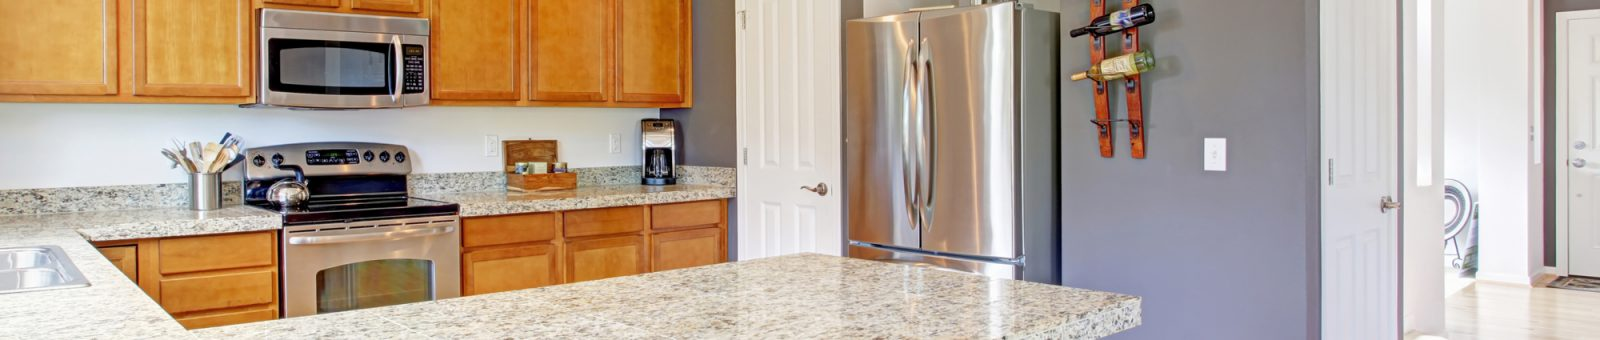 Granite Natural Stone Gelglossrhgelgloss: Gel Gloss Kitchen And Bath At Home Improvement Advice